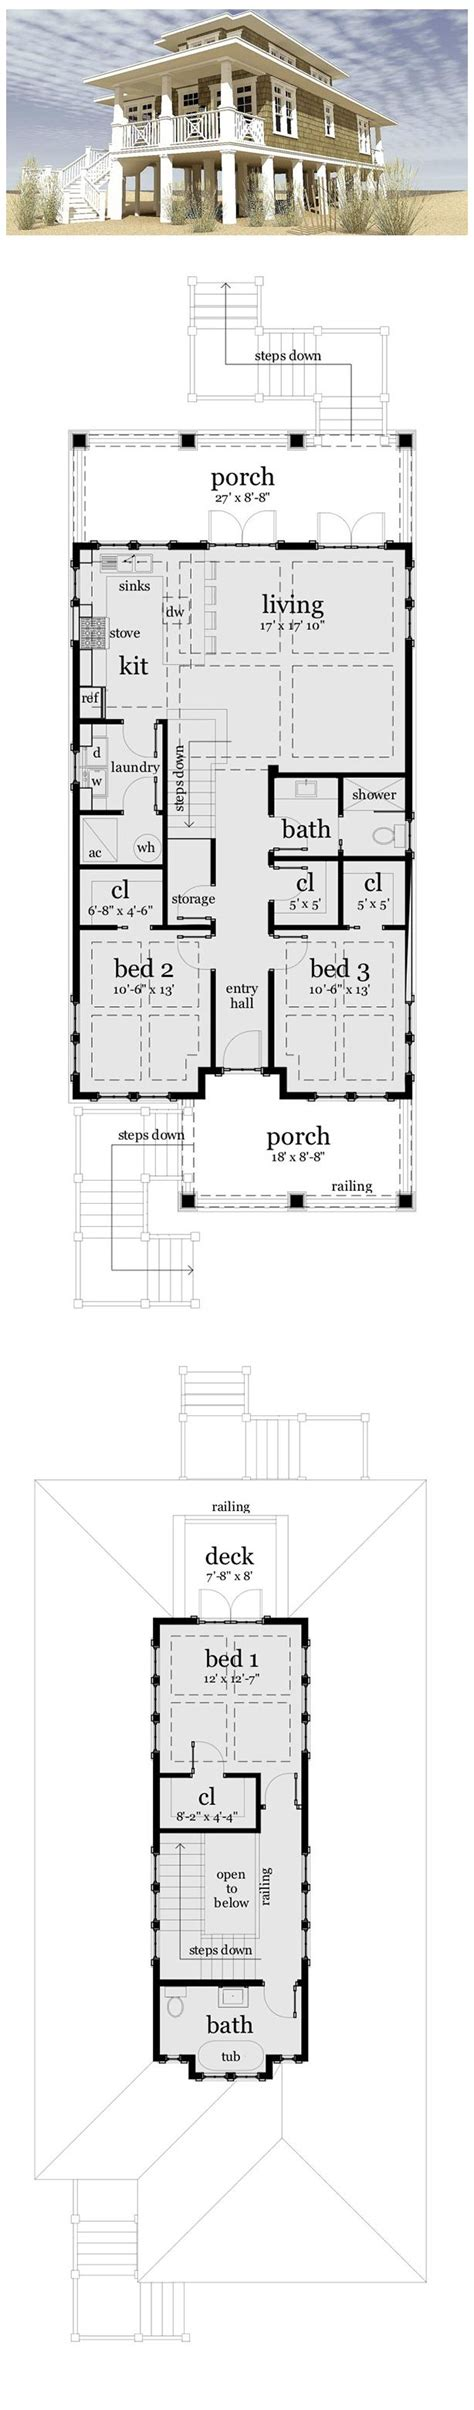 coastal home floor plans 25 best ideas about house plans on house floor plans lake house plans